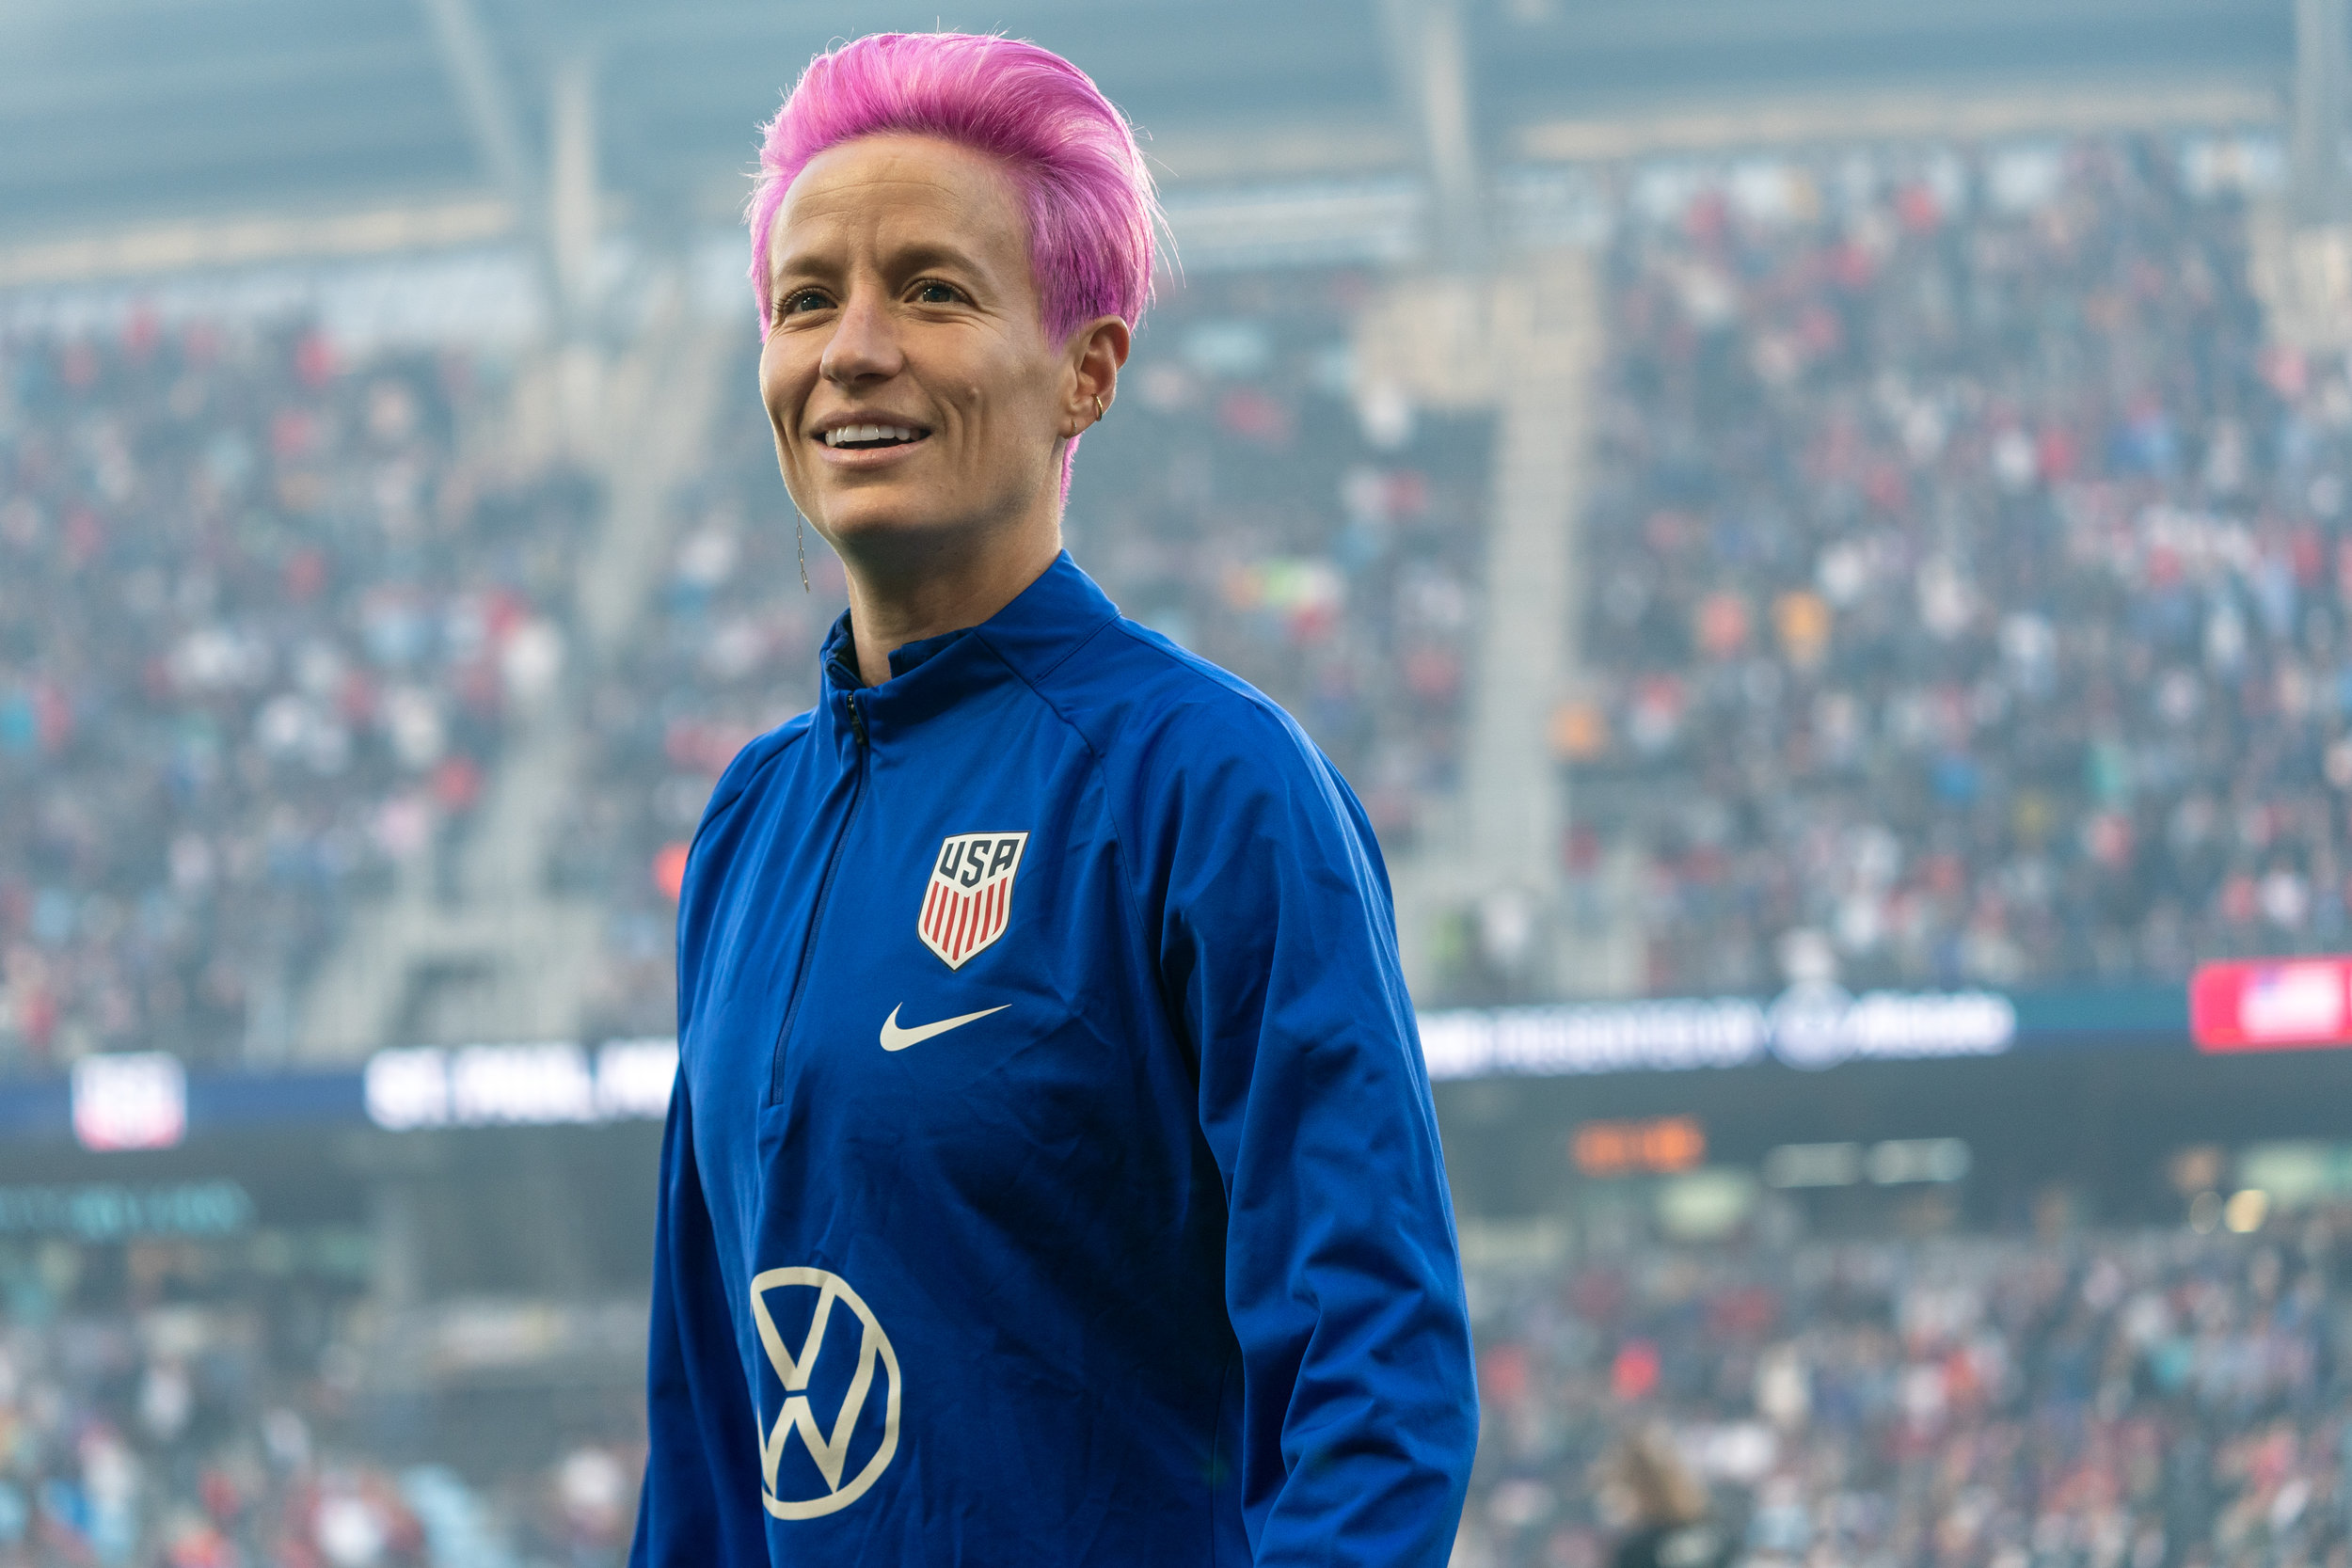 Megan Rapinoe at the US Women's National Team's Victory Tour in St Paul, Minnesota